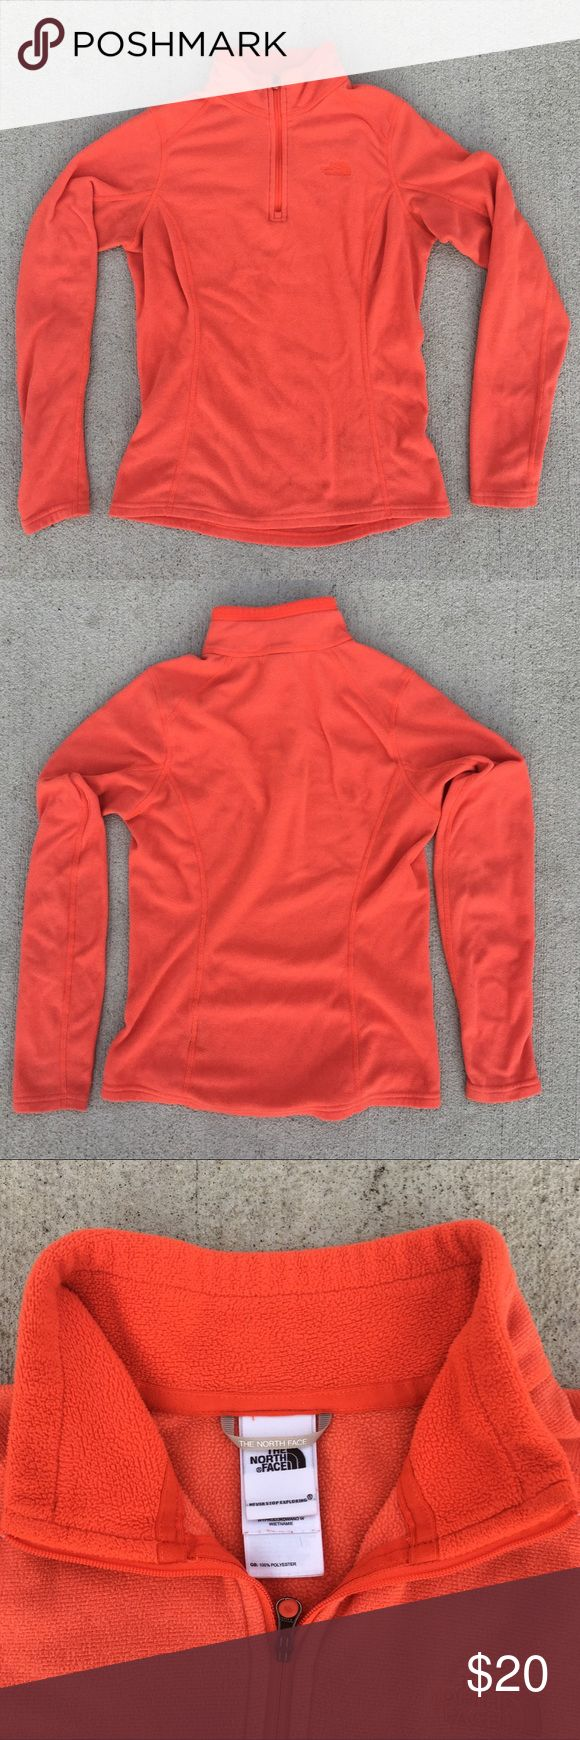 """The North Face Size Small Orange Fleece Sweatshirt Woman's The North Face orange hood less sweatshirt.  •Size Small  •Measurements: underarm to underarm: 16"""" ~ length 23"""" ~ shoulder to end of sleeve 23"""" • small discoloration on arm. Picture 4 The North Face Tops Sweatshirts & Hoodies"""